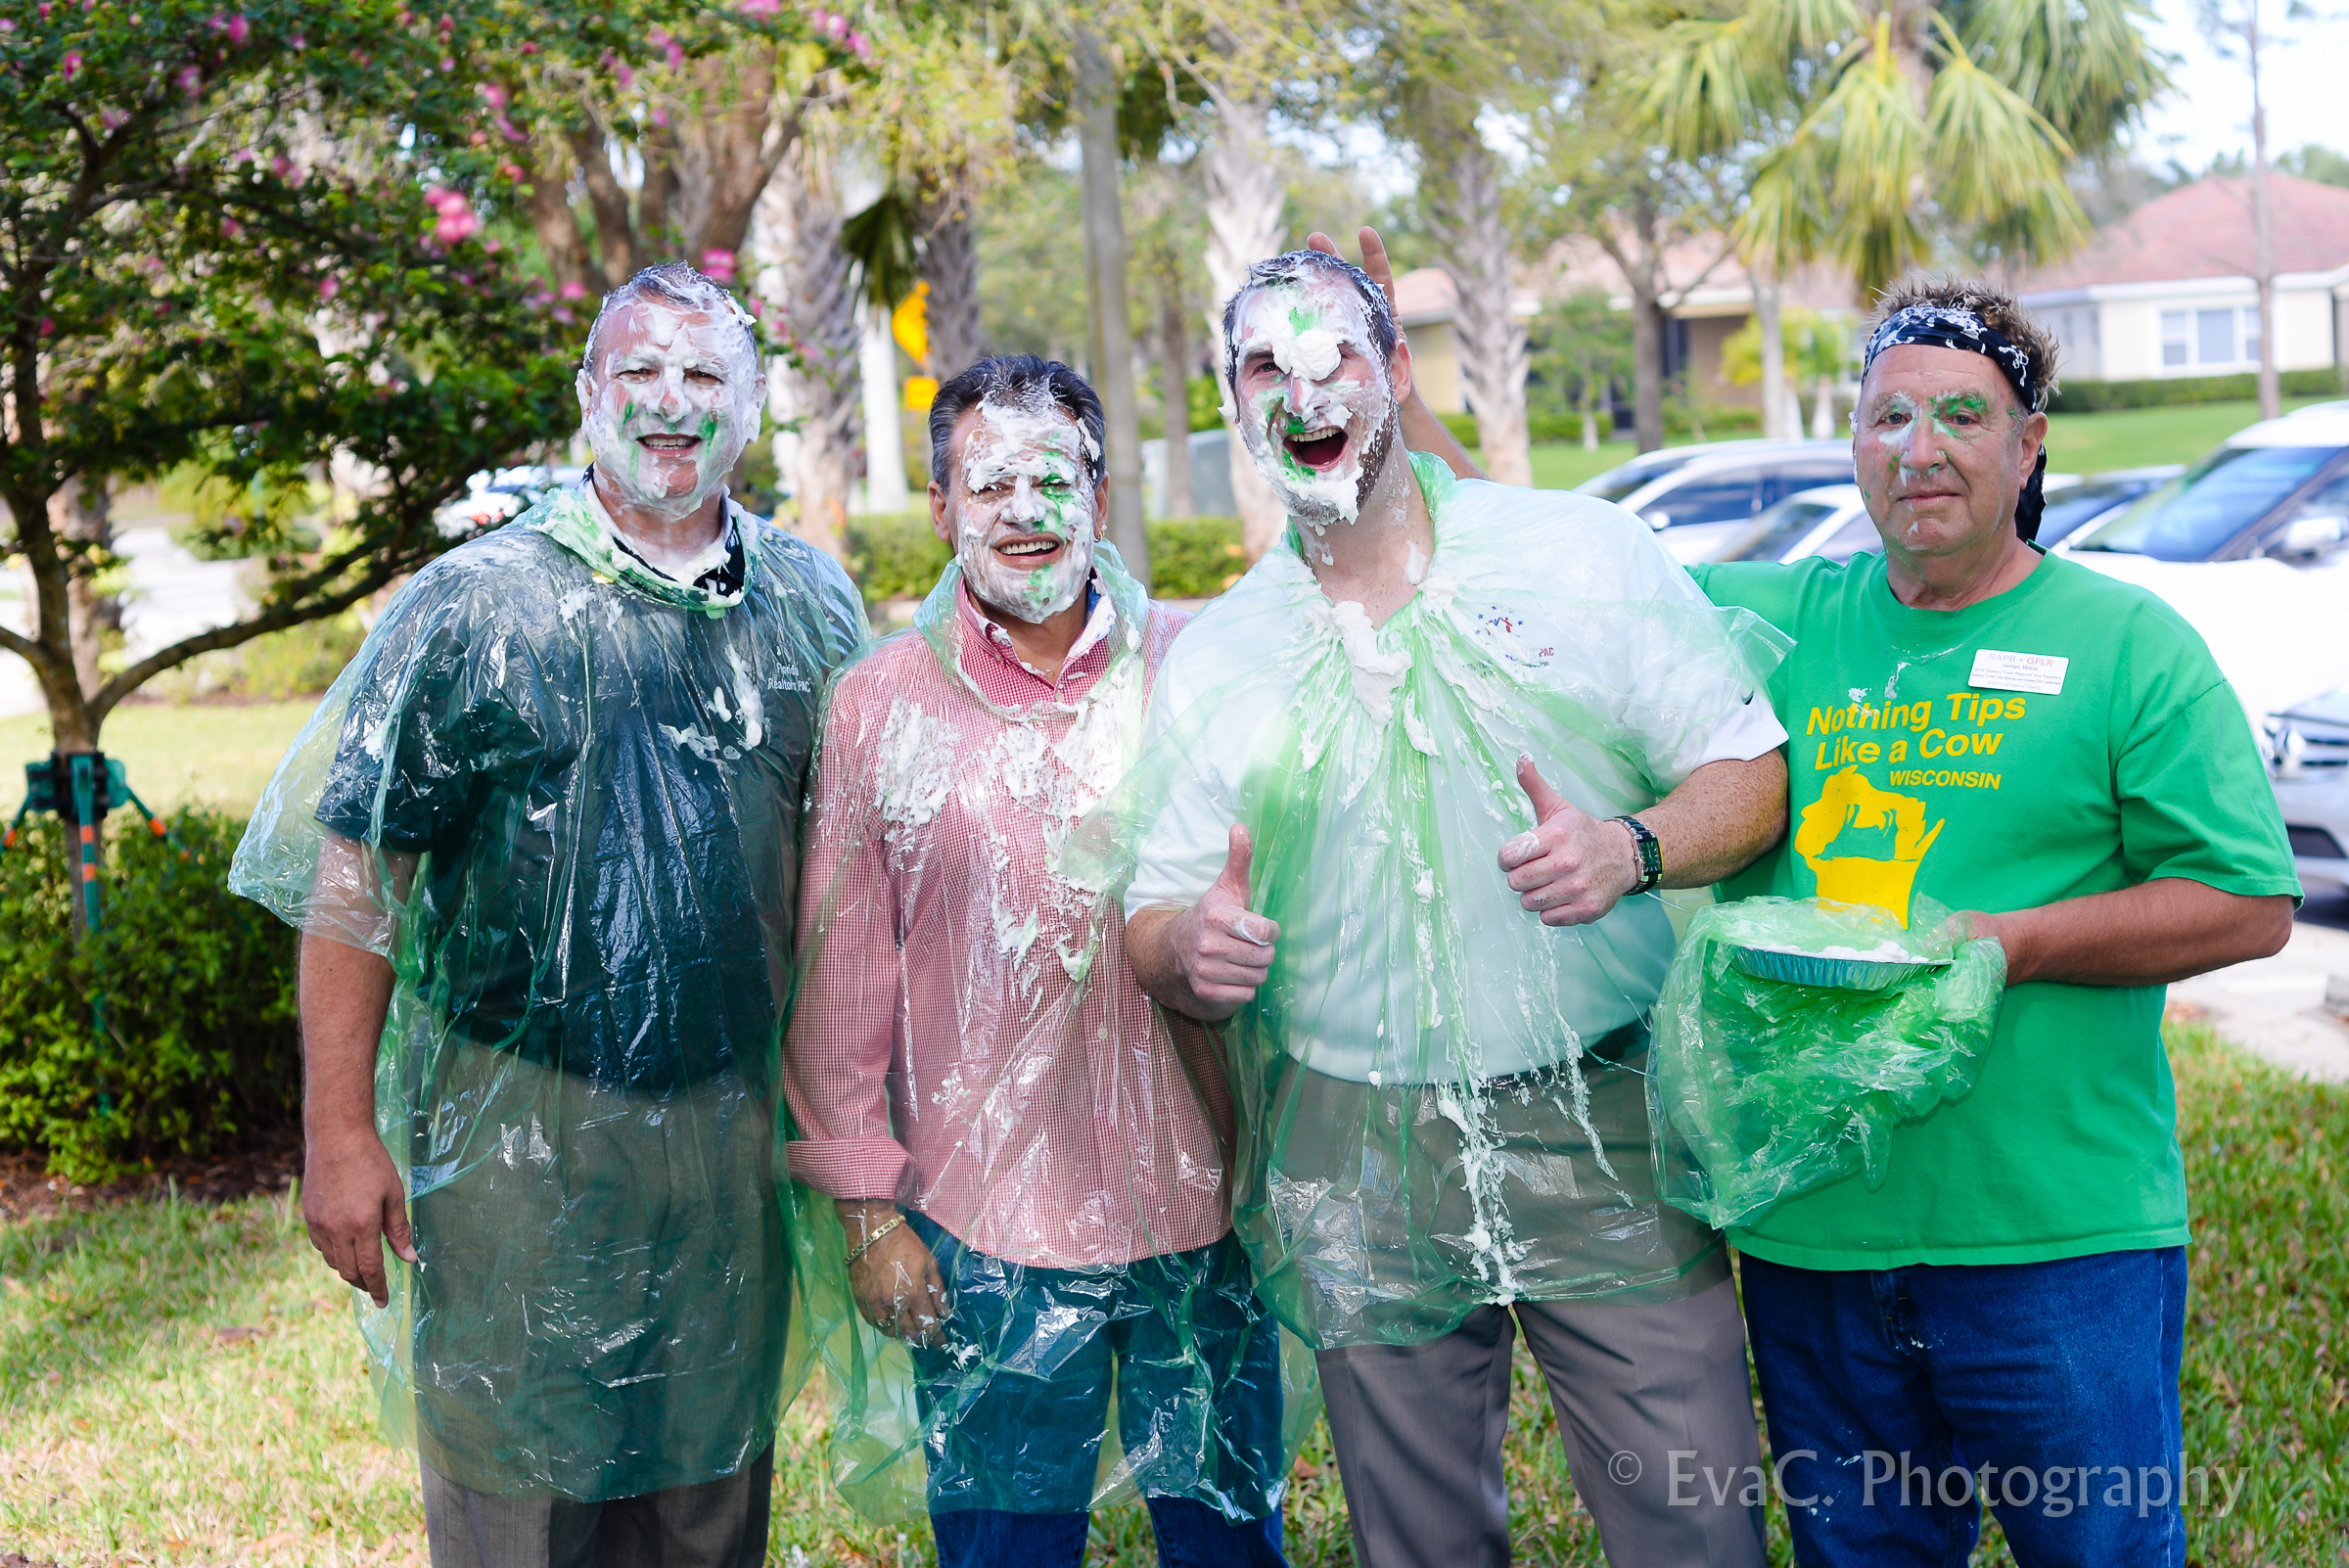 (From left to right) Government Affairs Committee Chair Anthony Gambardella, RPAC Vice Chair Julio Sanchez, RAPB+GFLR First Vice President Jarrod Lowe, Treasure Coast Regional Board Chair Jim Weix after being pied in the face to raise money for RPAC